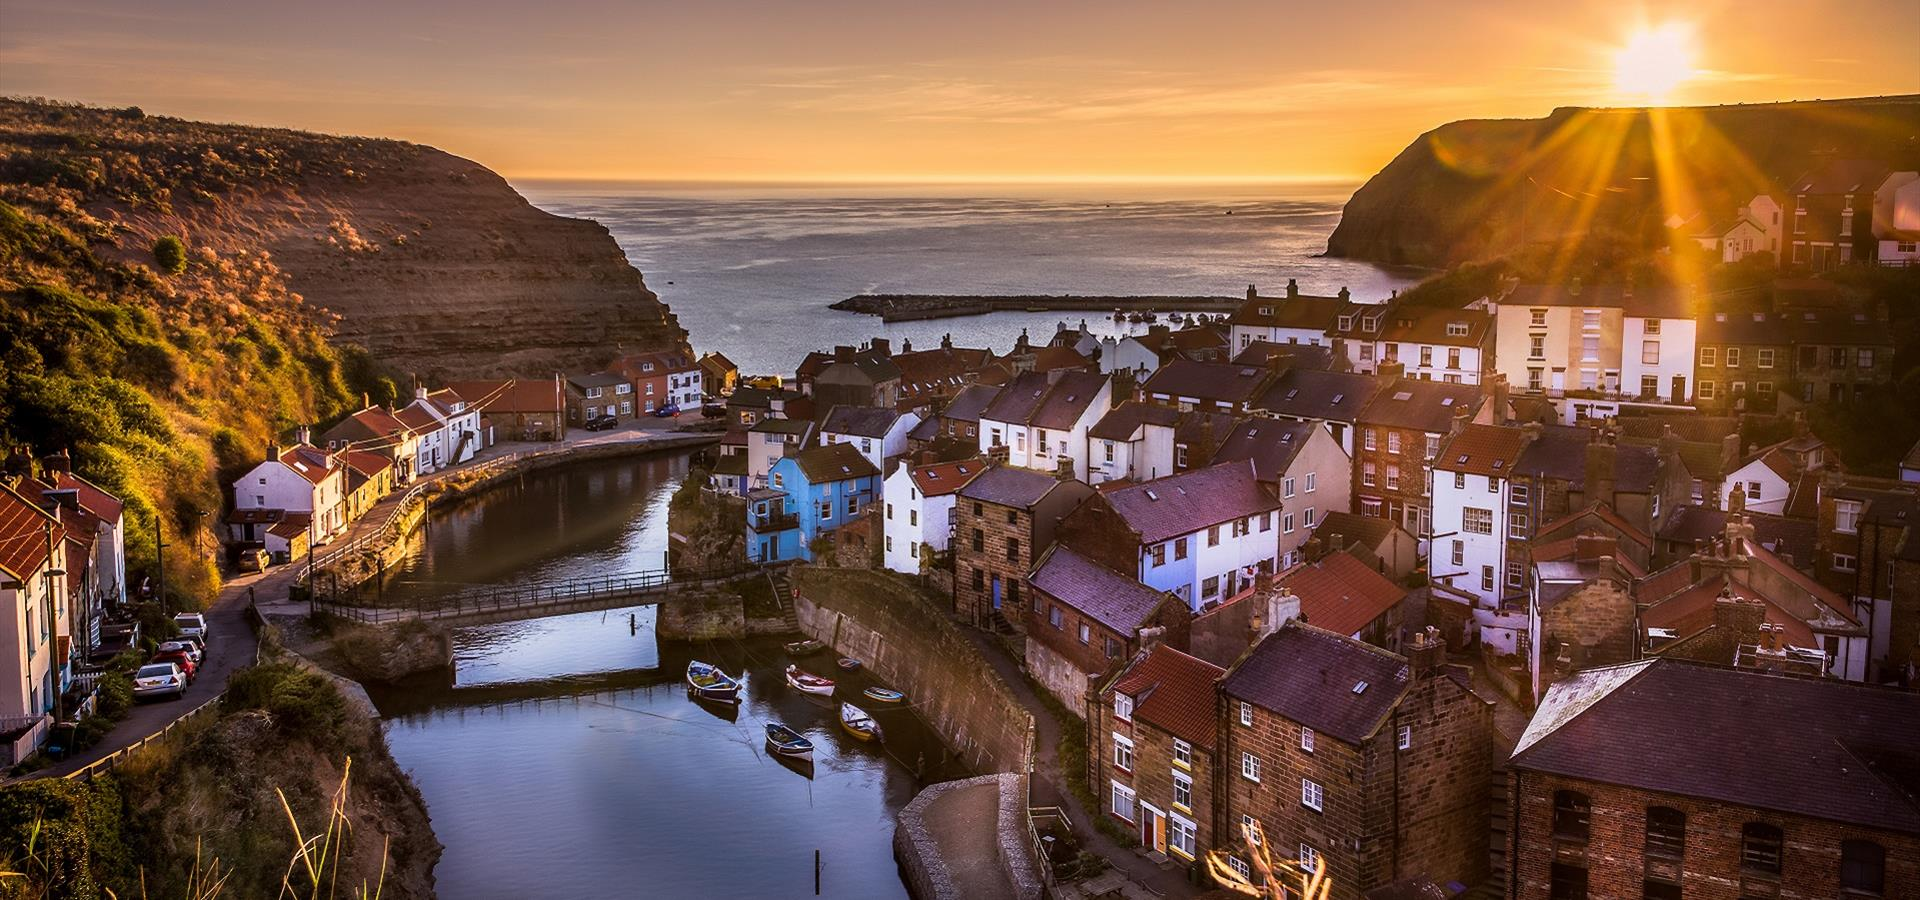 An image of Staithes at Sunset - By Brian Smith